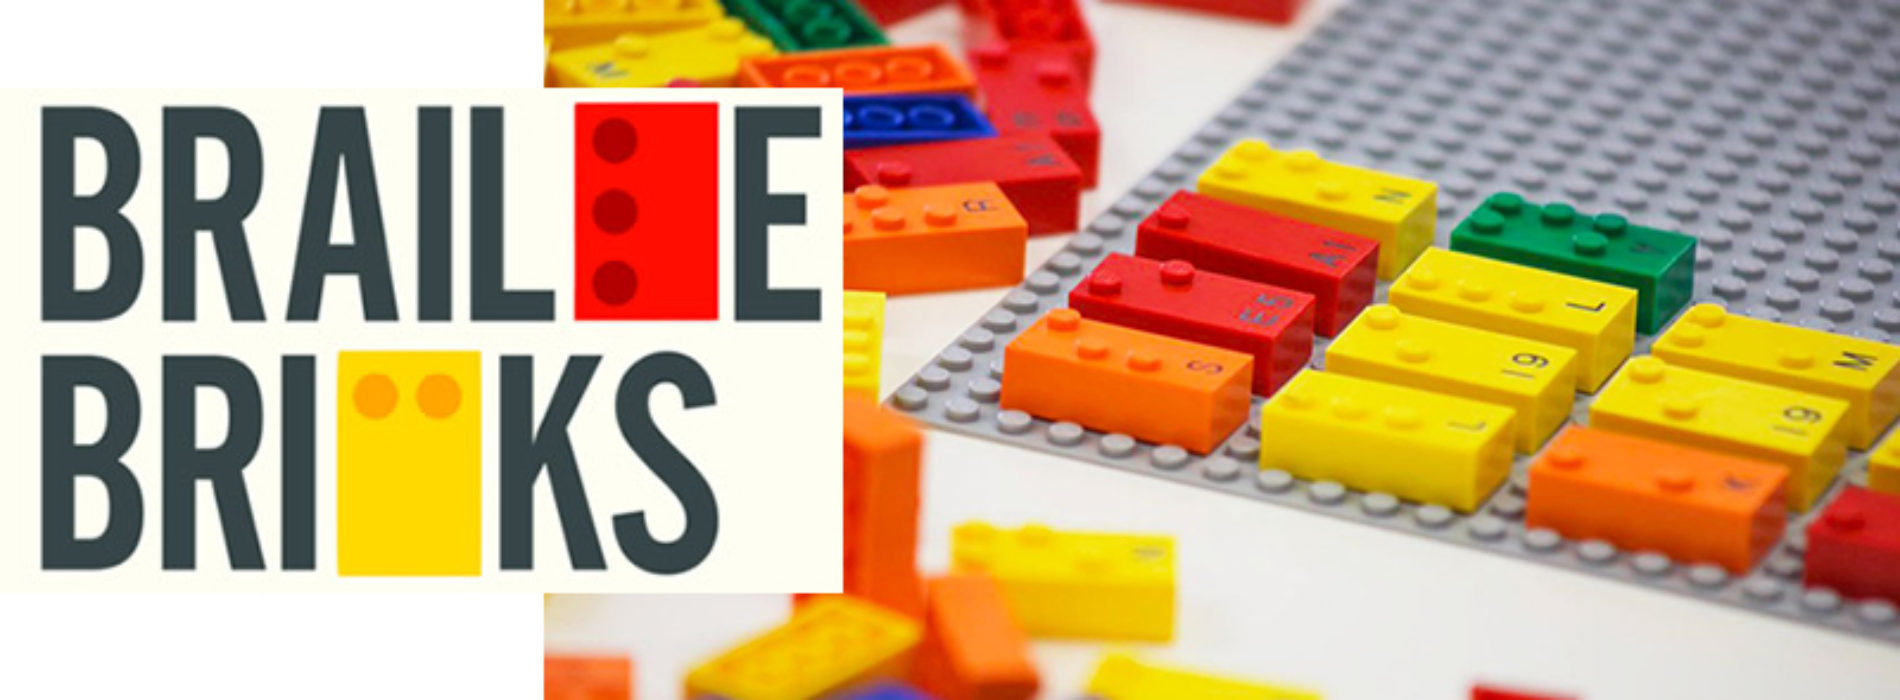 Pilot of LEGO® Braille Bricks to develop blind and visually impaired children's breadth of skills